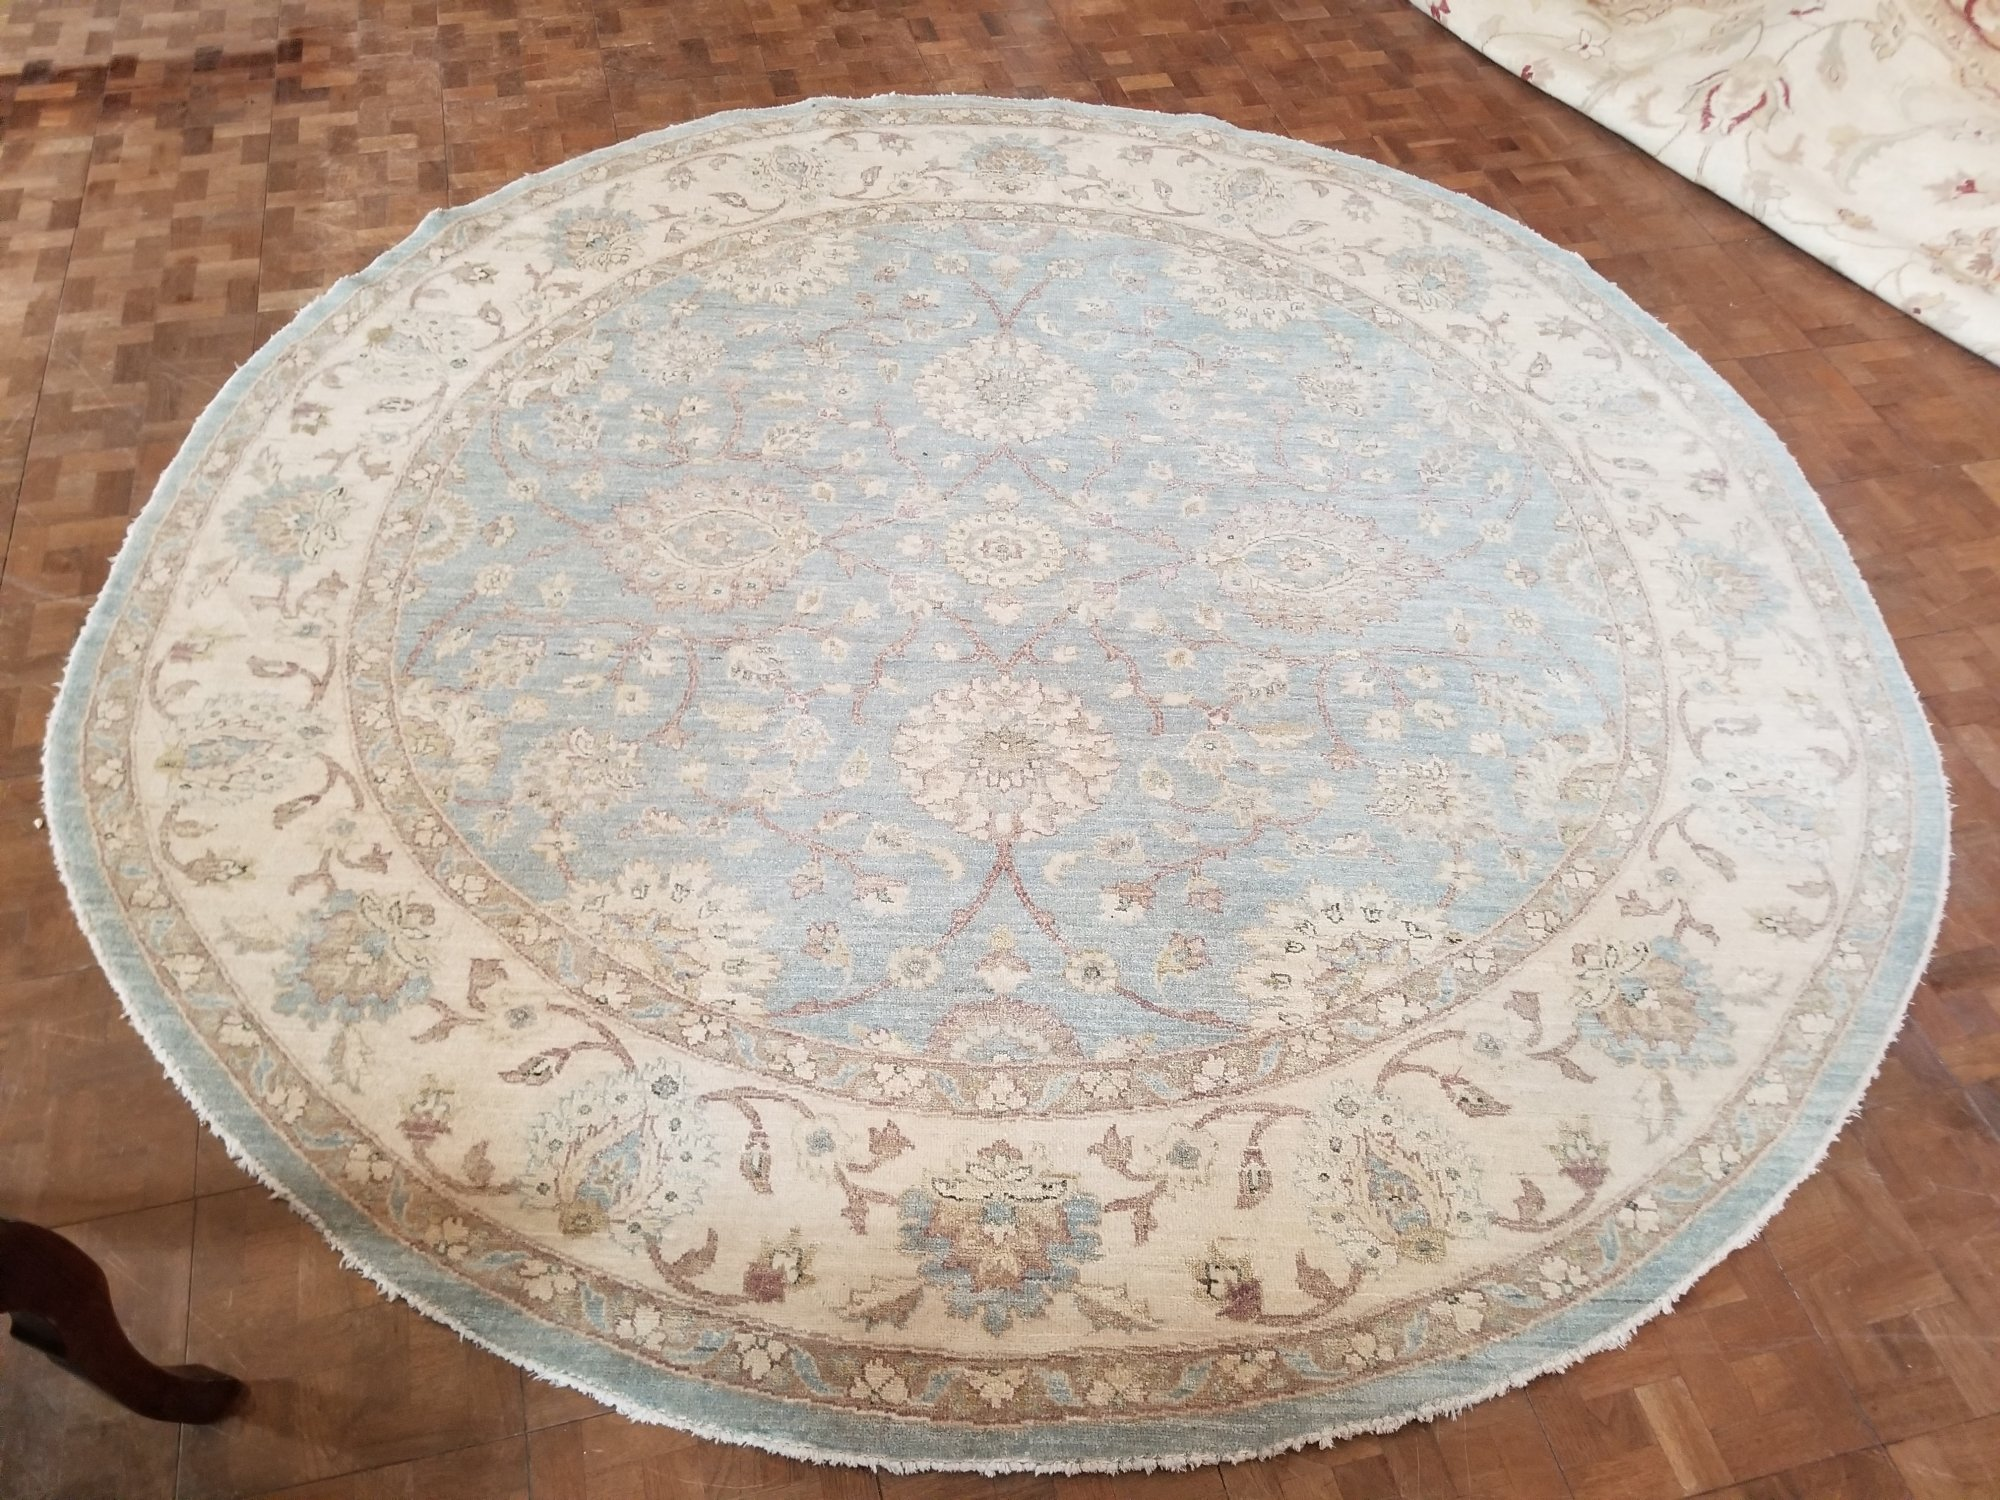 8' X 8'1 Indian made Peshewar design in a light sky blue and cream border and accents   PDTX